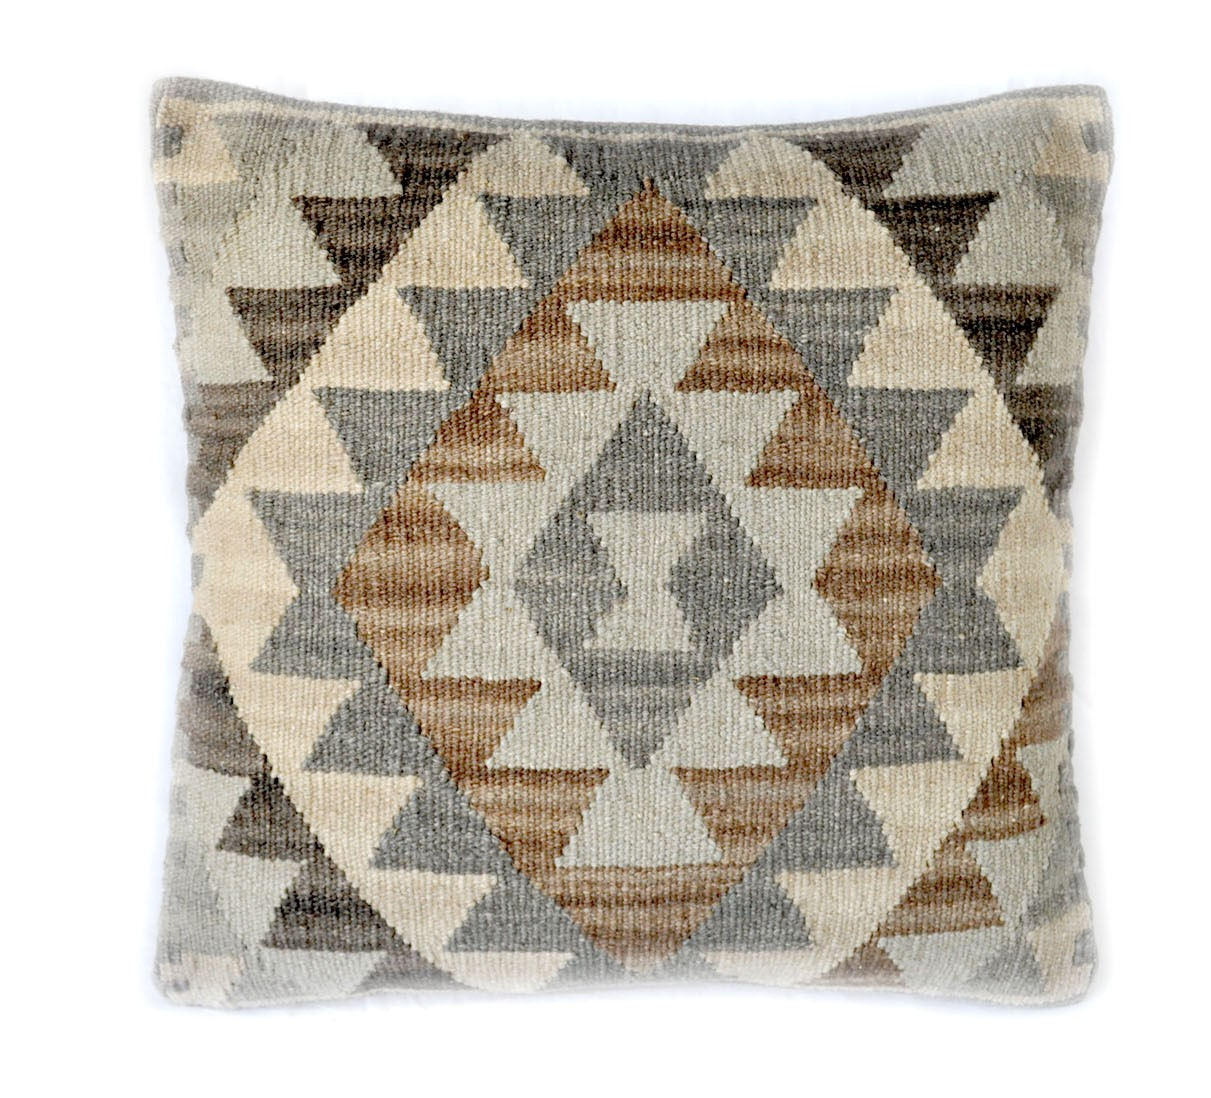 18″x18″ Hand-woven Wool Kilim Pillow Cover 12980986